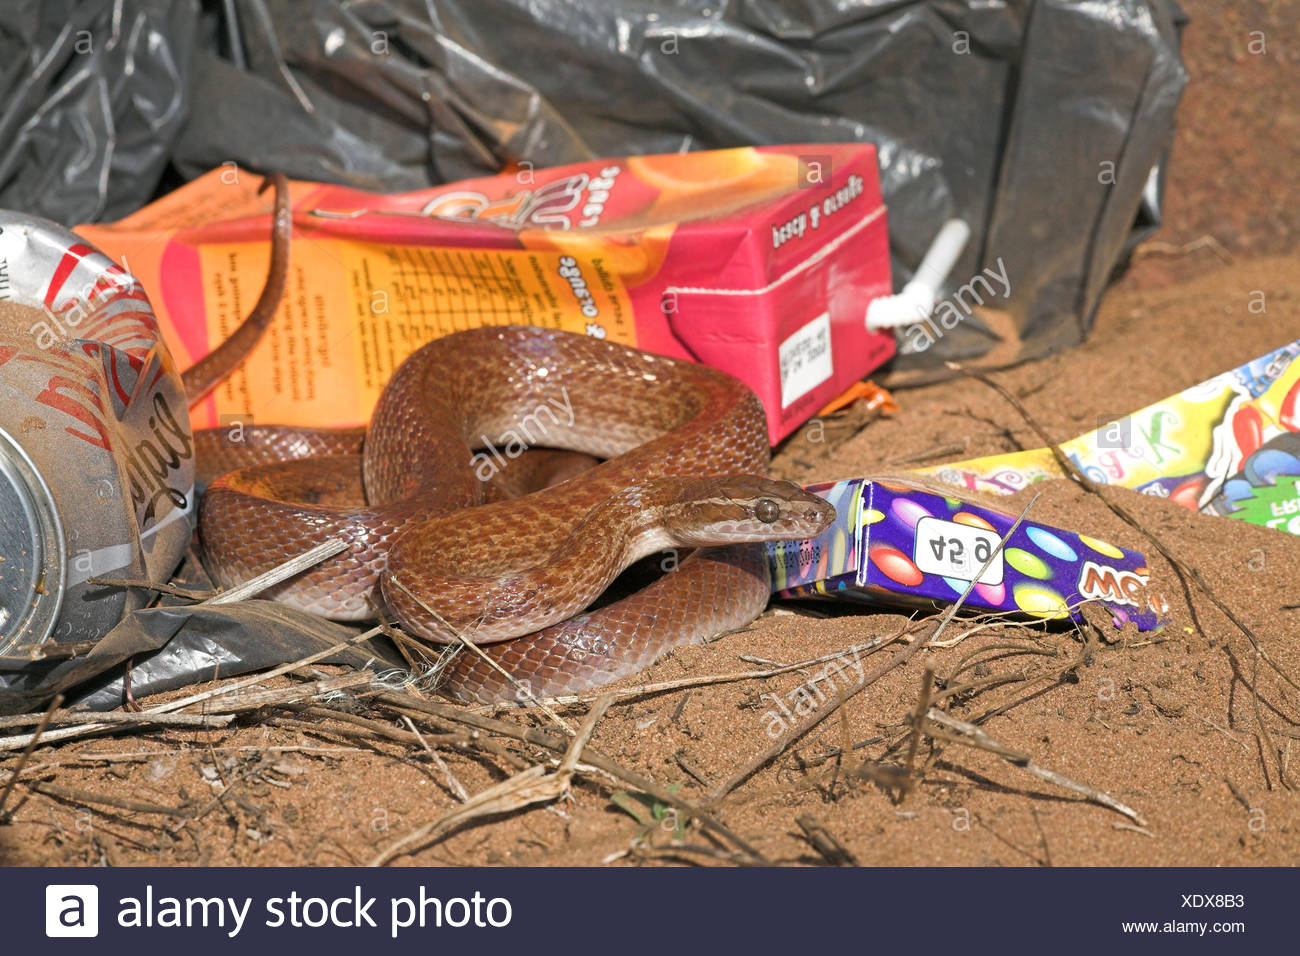 Photo of a brown house snake between colourful garbage, brown house snakes often live around humans as they hunt for mice and rats that are attracted by them. - Stock Image